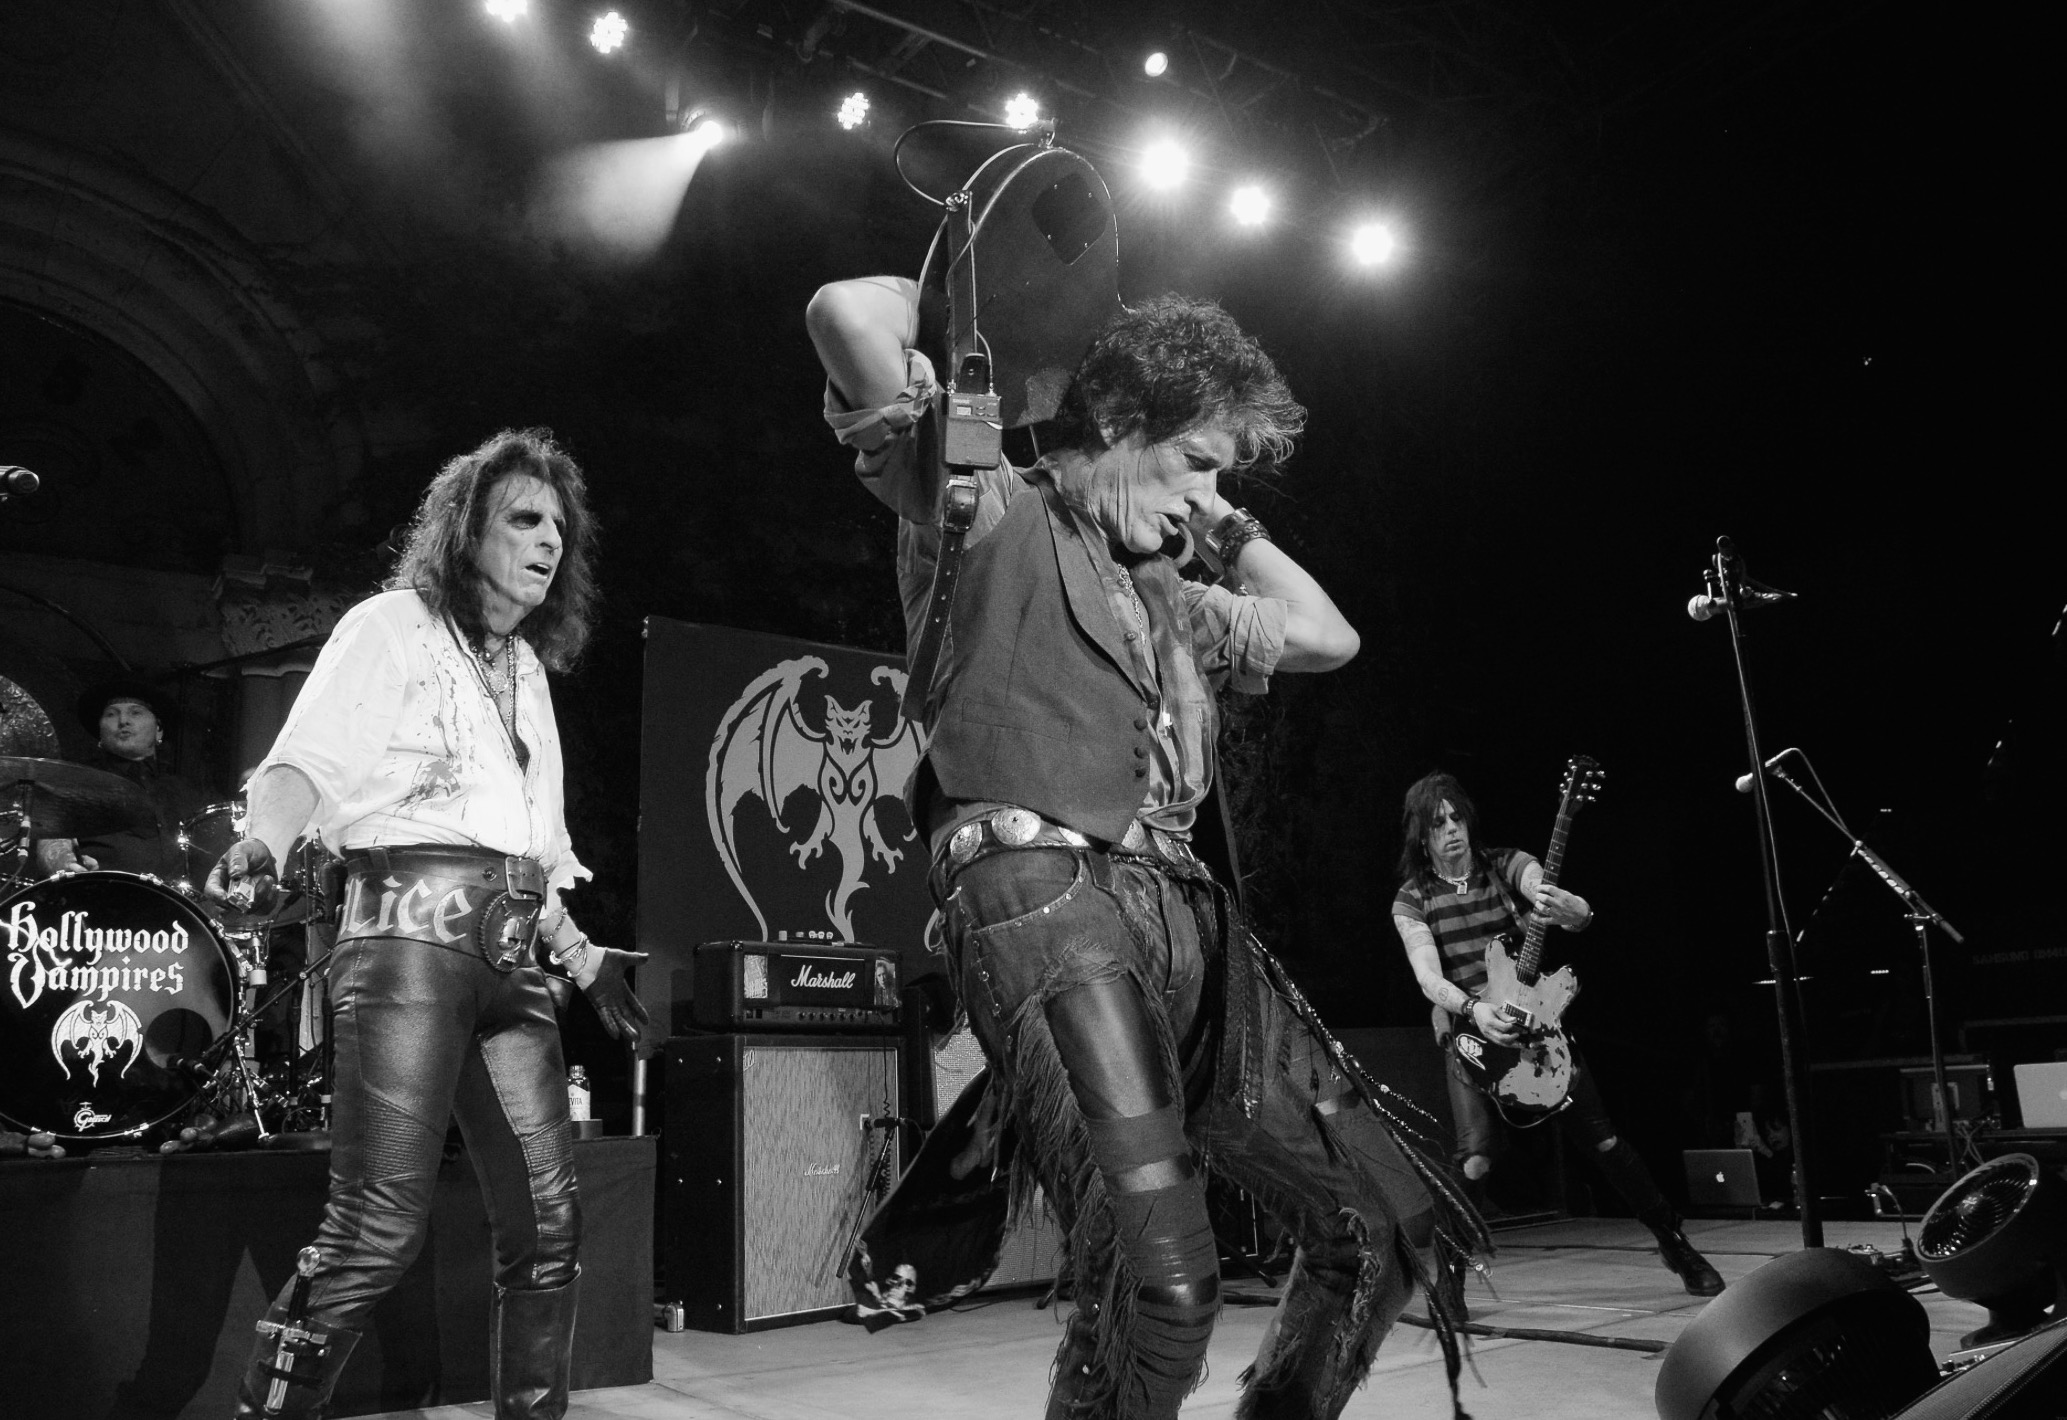 Joe Perry is honored with the Les Paul Award at NAMM - Photo © Suzanne Allison Witkin for EastCoastRocker.com